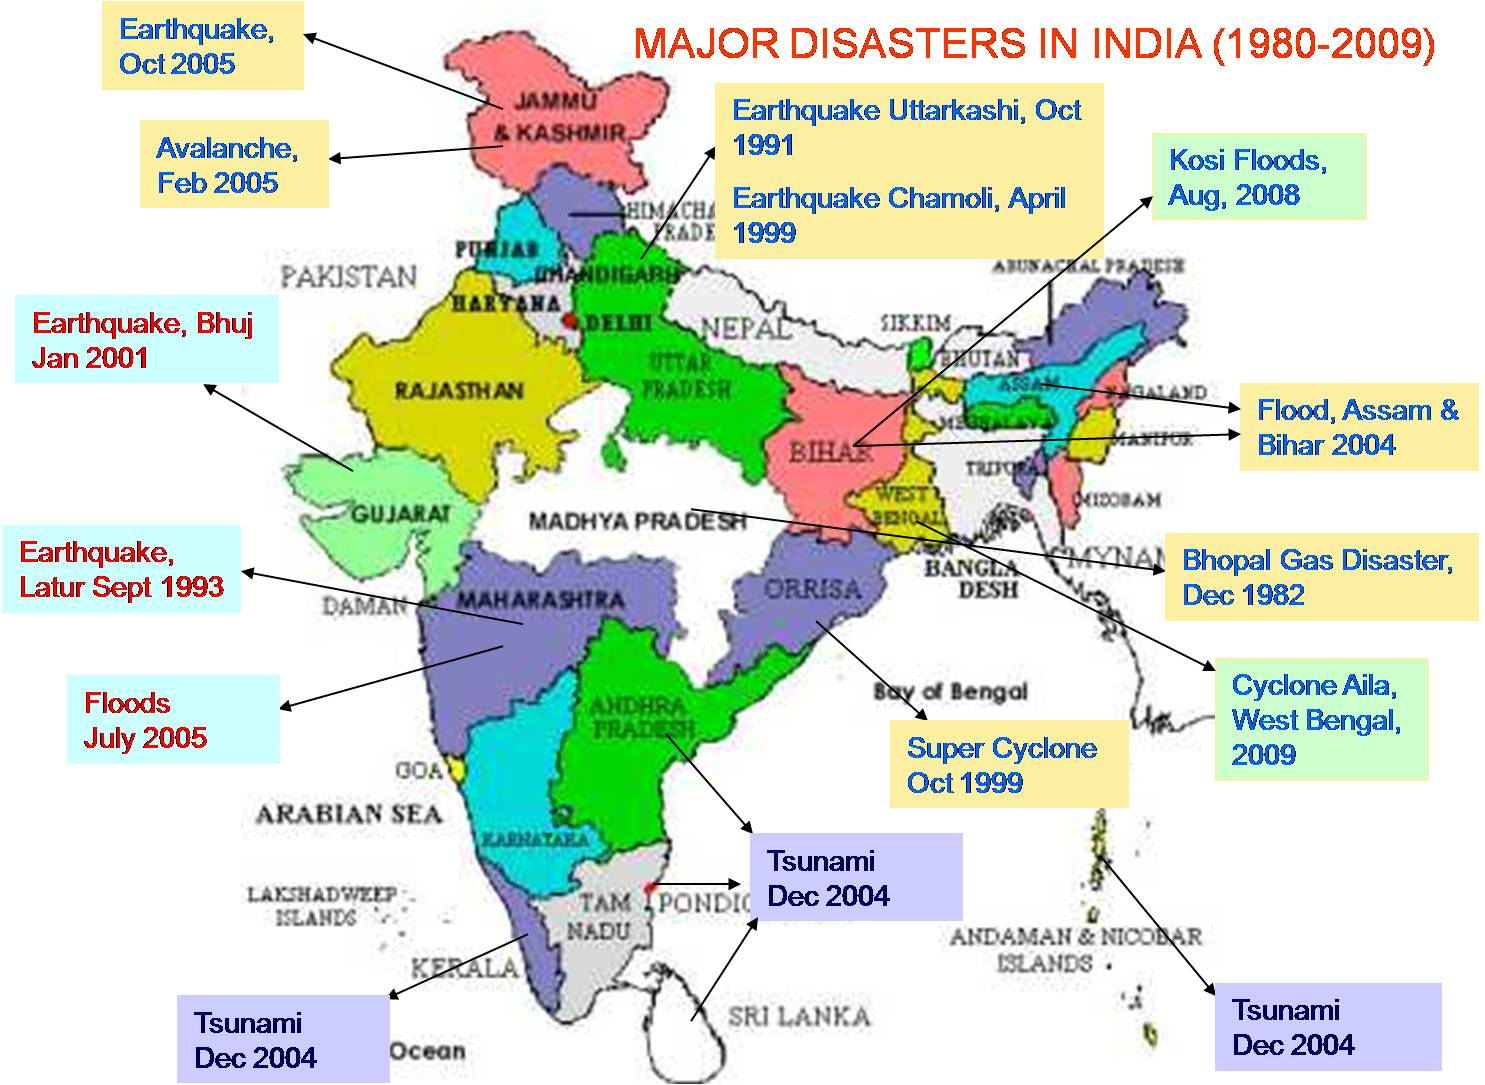 natural disasters in hindi Child labour essay in hindi font used essay structure ks3 persuasive essay writing natural on essay disasters floods things fall apart short essay questions 4.